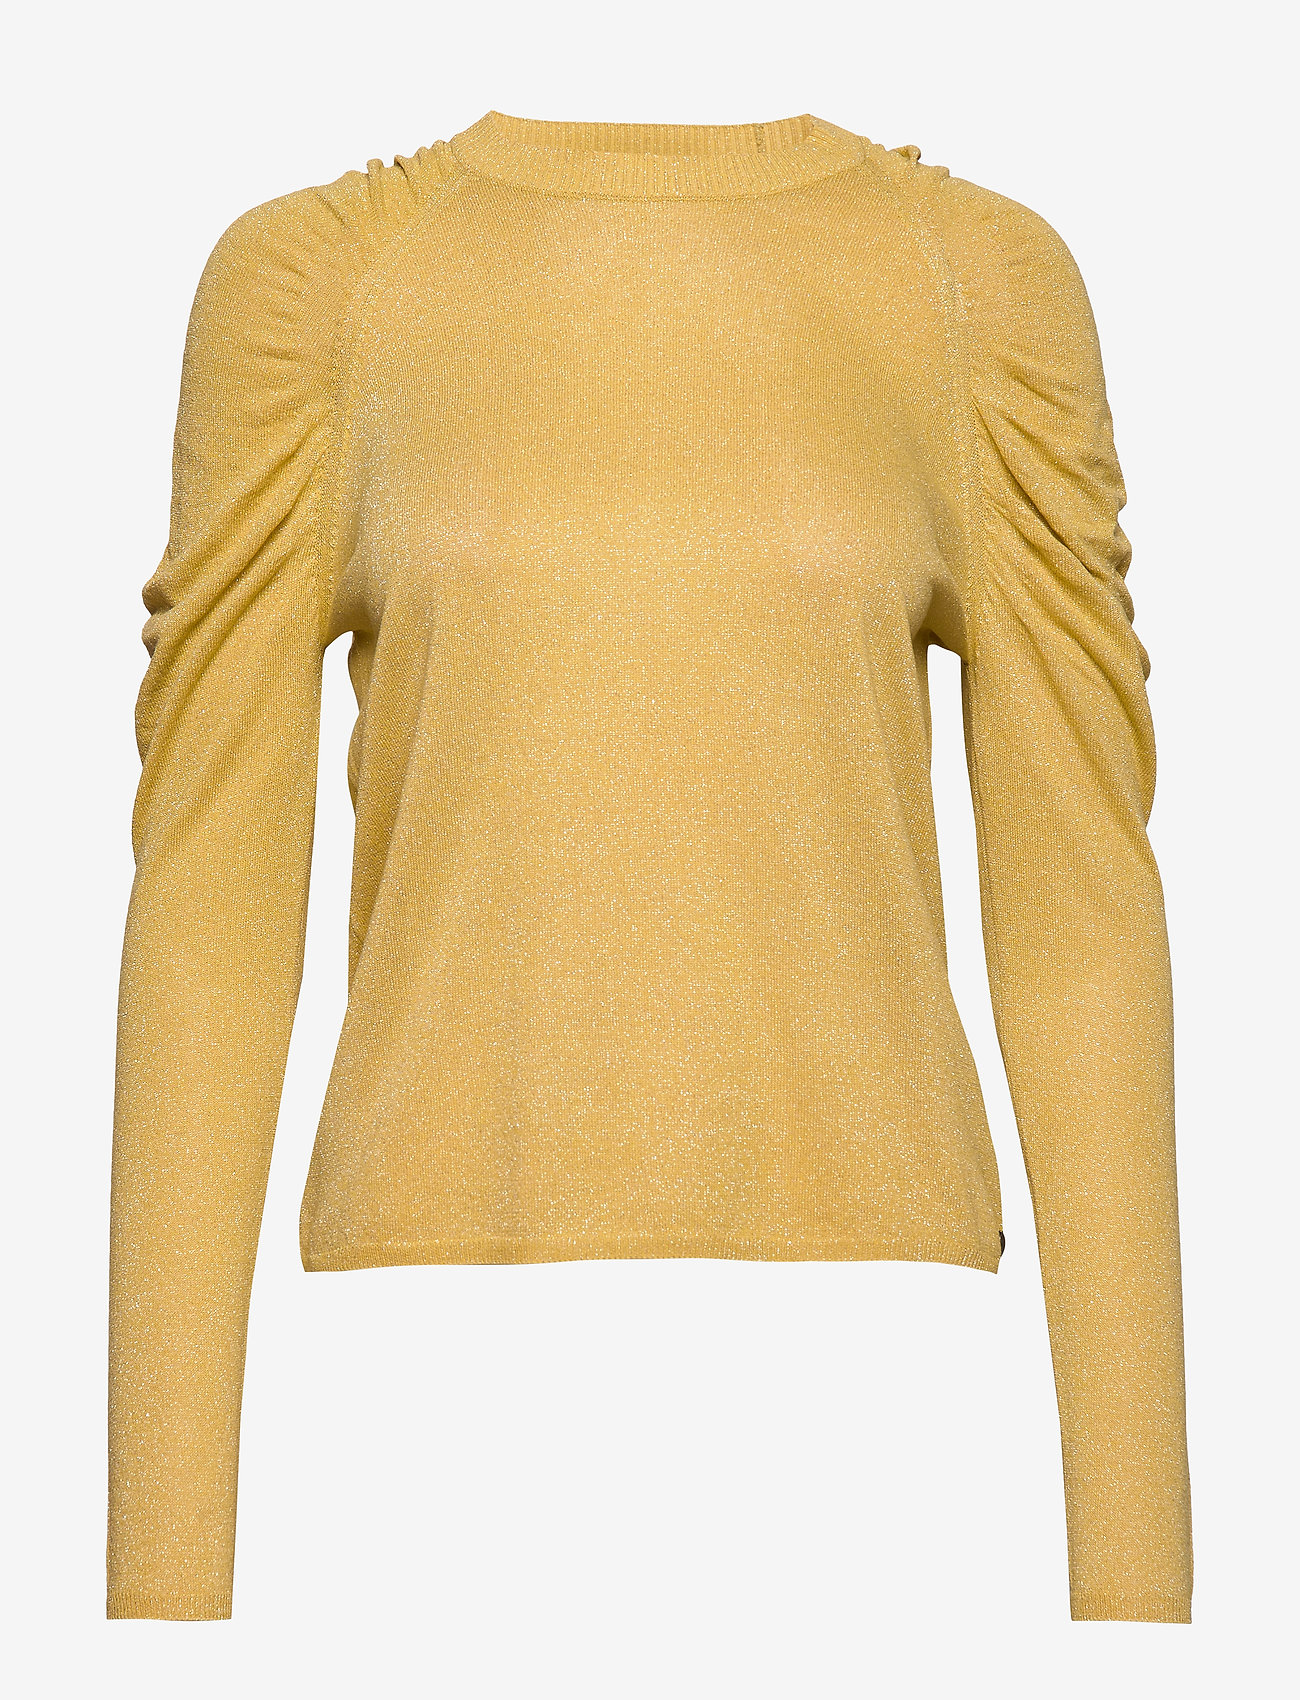 Coster Copenhagen - Knit in lurex w. volume at shoulder - neulepuserot - light yellow